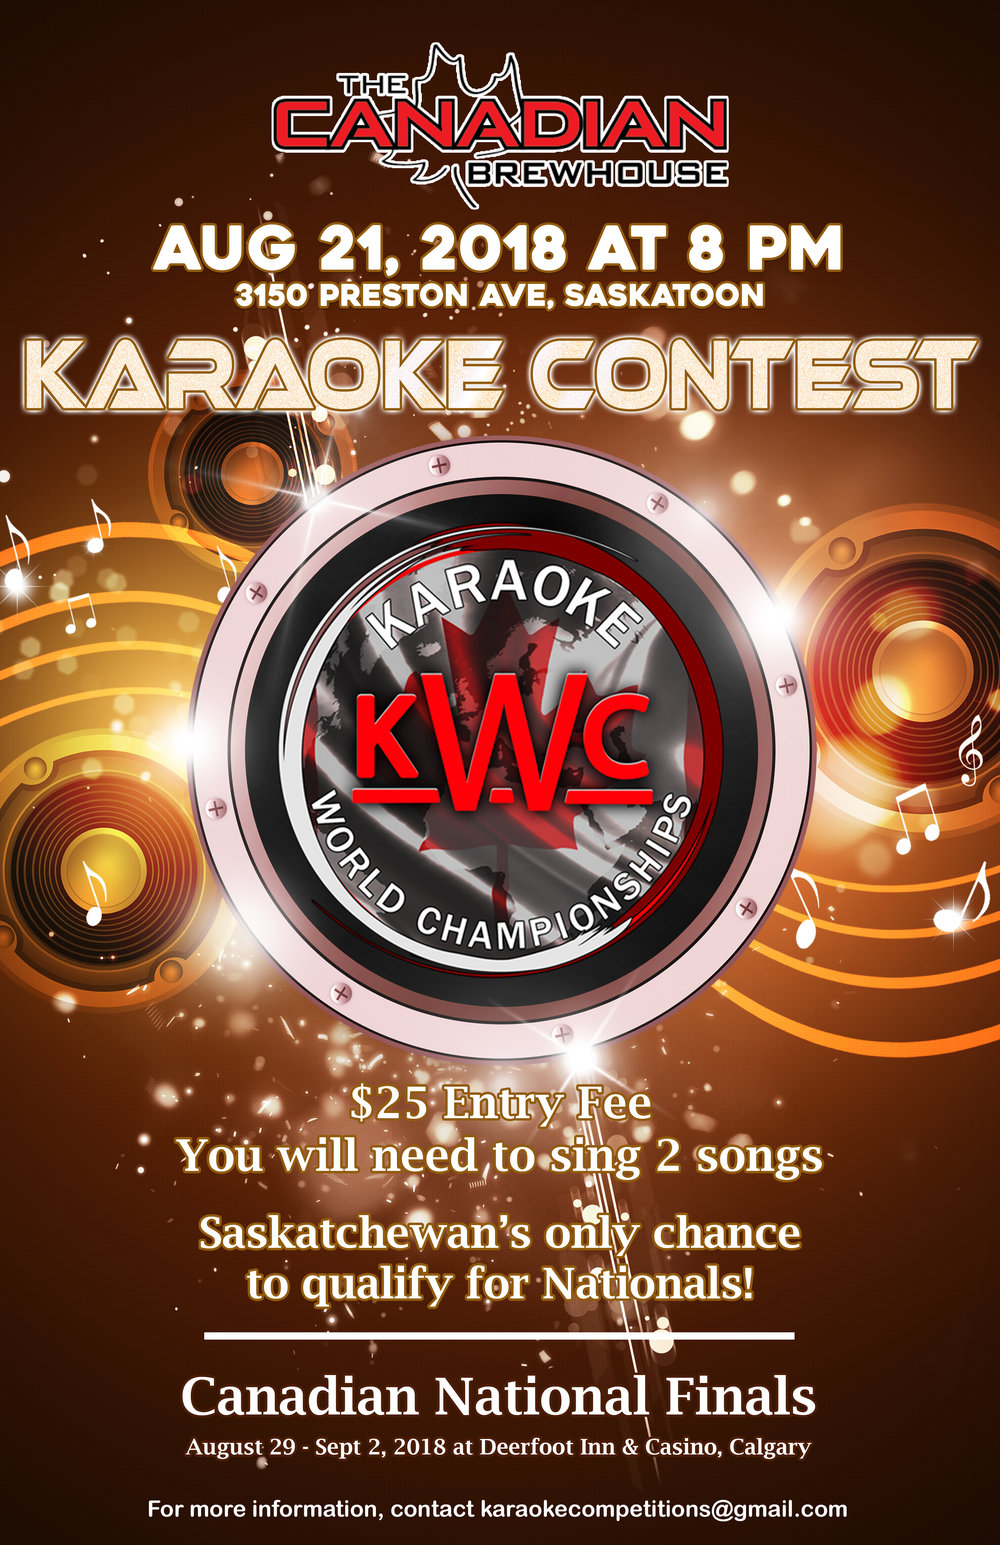 Canadian Brewhouse Saskatoon  - 3150 Preston Avenue, Saskatoon, SK  S7T 0V1ONE NIGHT ONLY!! Tuesday, August 21, 2018Register on-line - $25 feeSign-in between 7:00 & 7:45 pmCompetition begins at 8:00 pmEach competitor sings 2 songsTop TWO men and TWO women are invited to attend & compete at the Canadian National Finals at the Deerfoot Inn & Casino in Calgary, AB from August 29 - September 2, 2018National winners win their way  (accommodations & airfare) to compete at the World Finals in Finland in December 2018!!